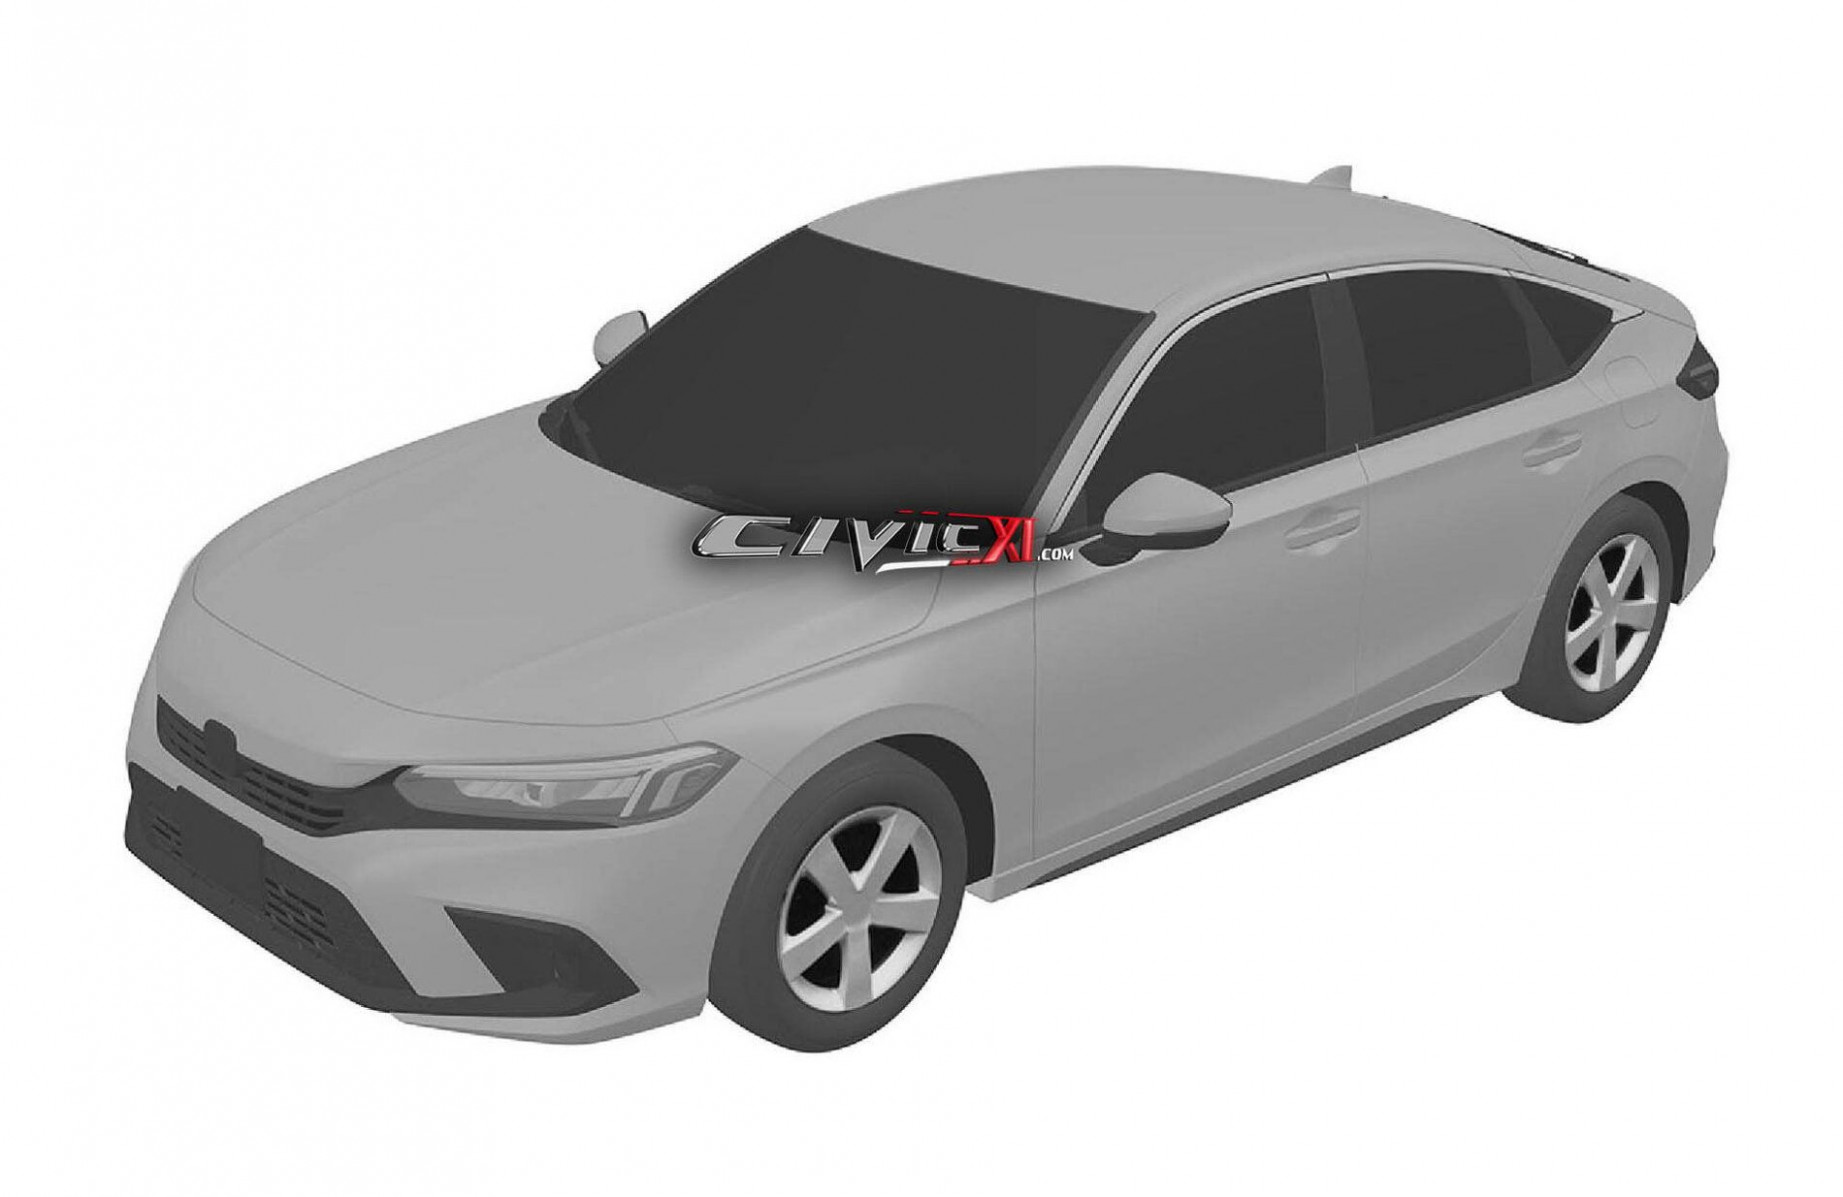 New Concept 2022 Honda Civic Coupe